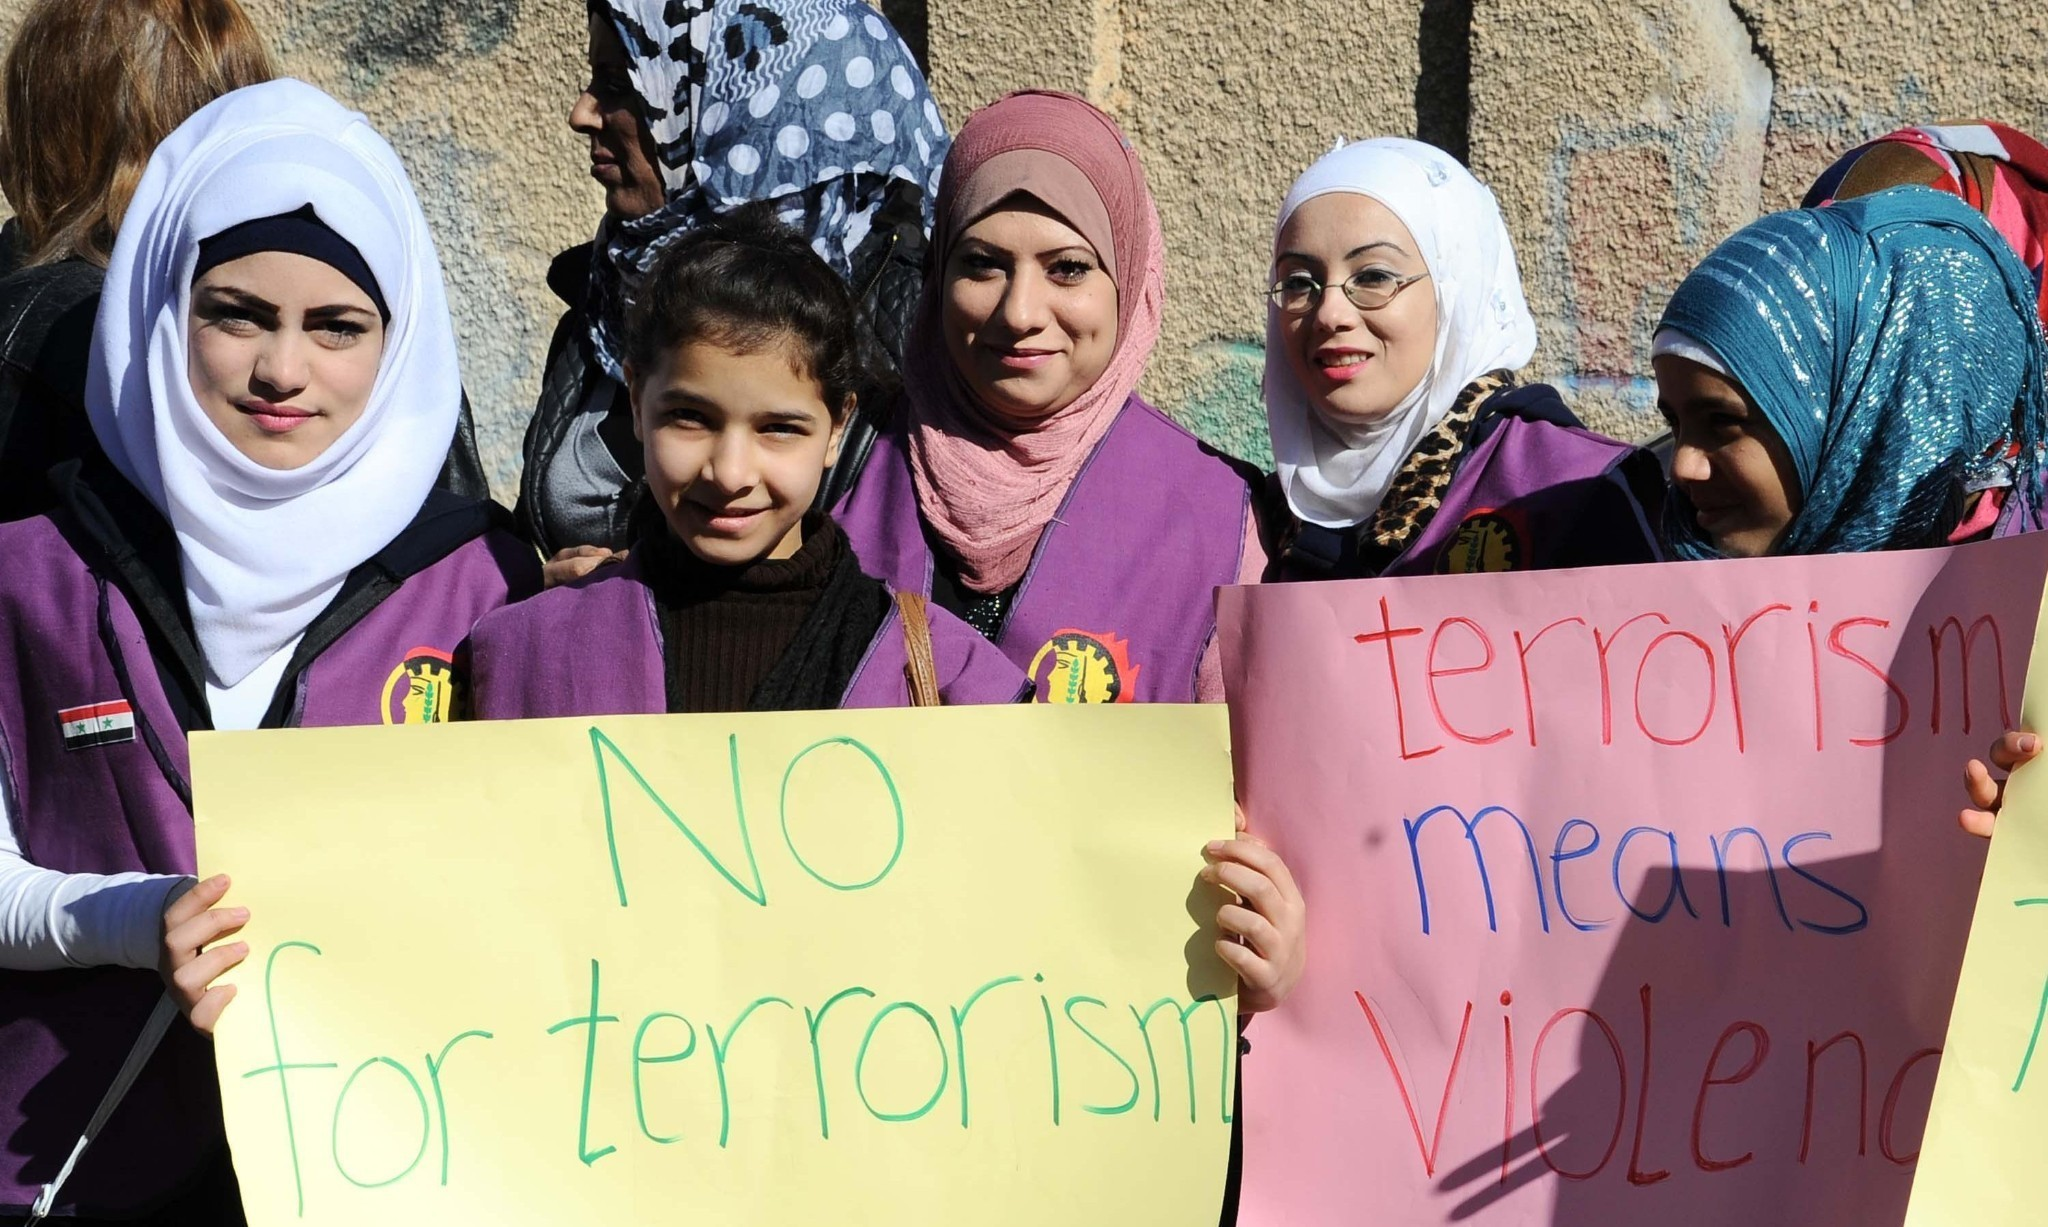 Scotland to train female Syrian peacemakers in conflict resolution